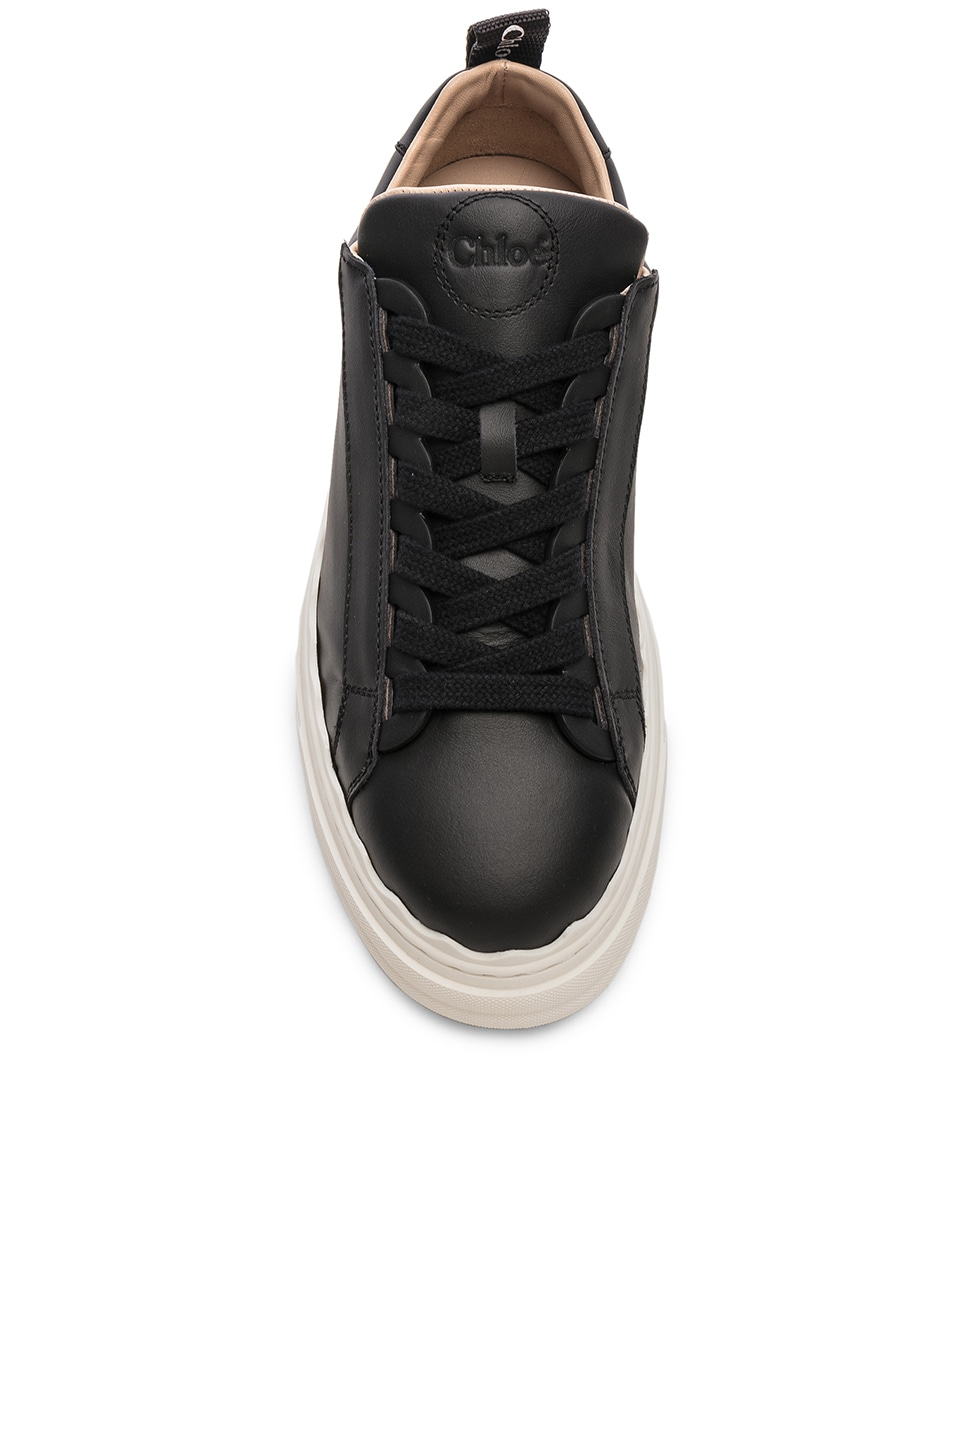 Image 4 of Chloe Low Top Sneakers in Black